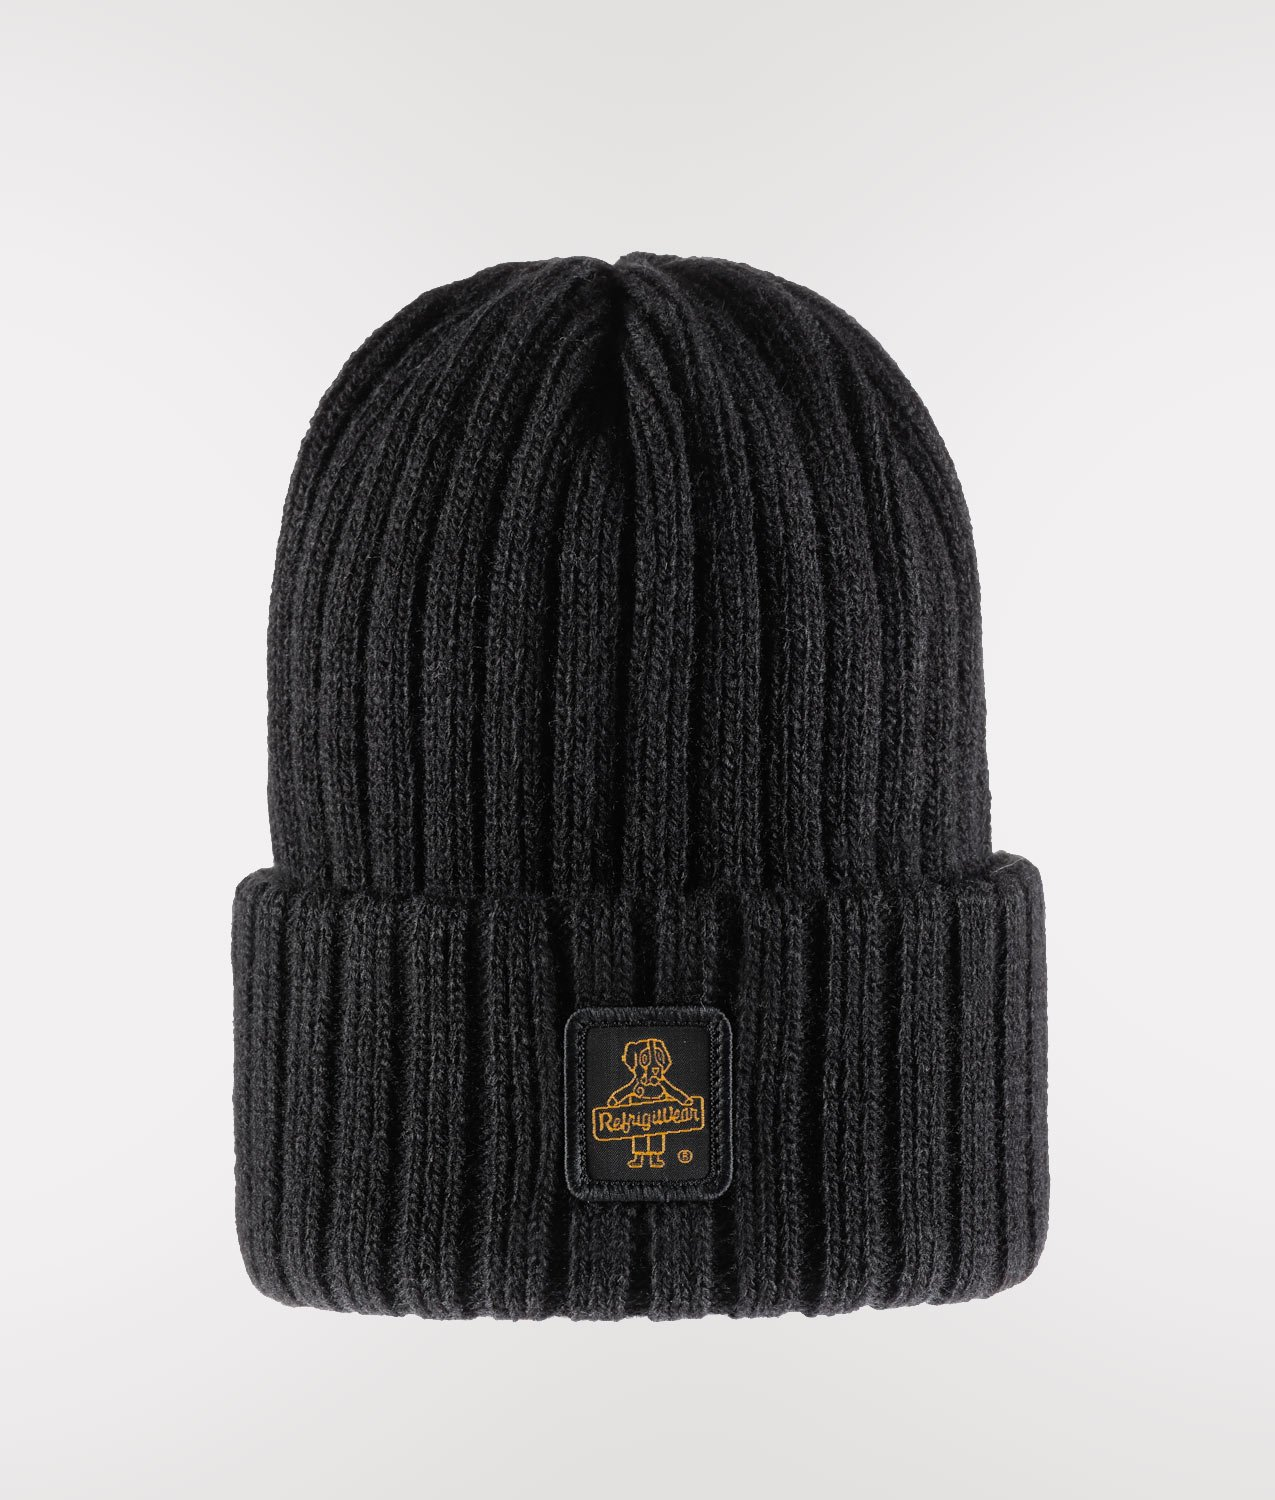 COLORADO HAT